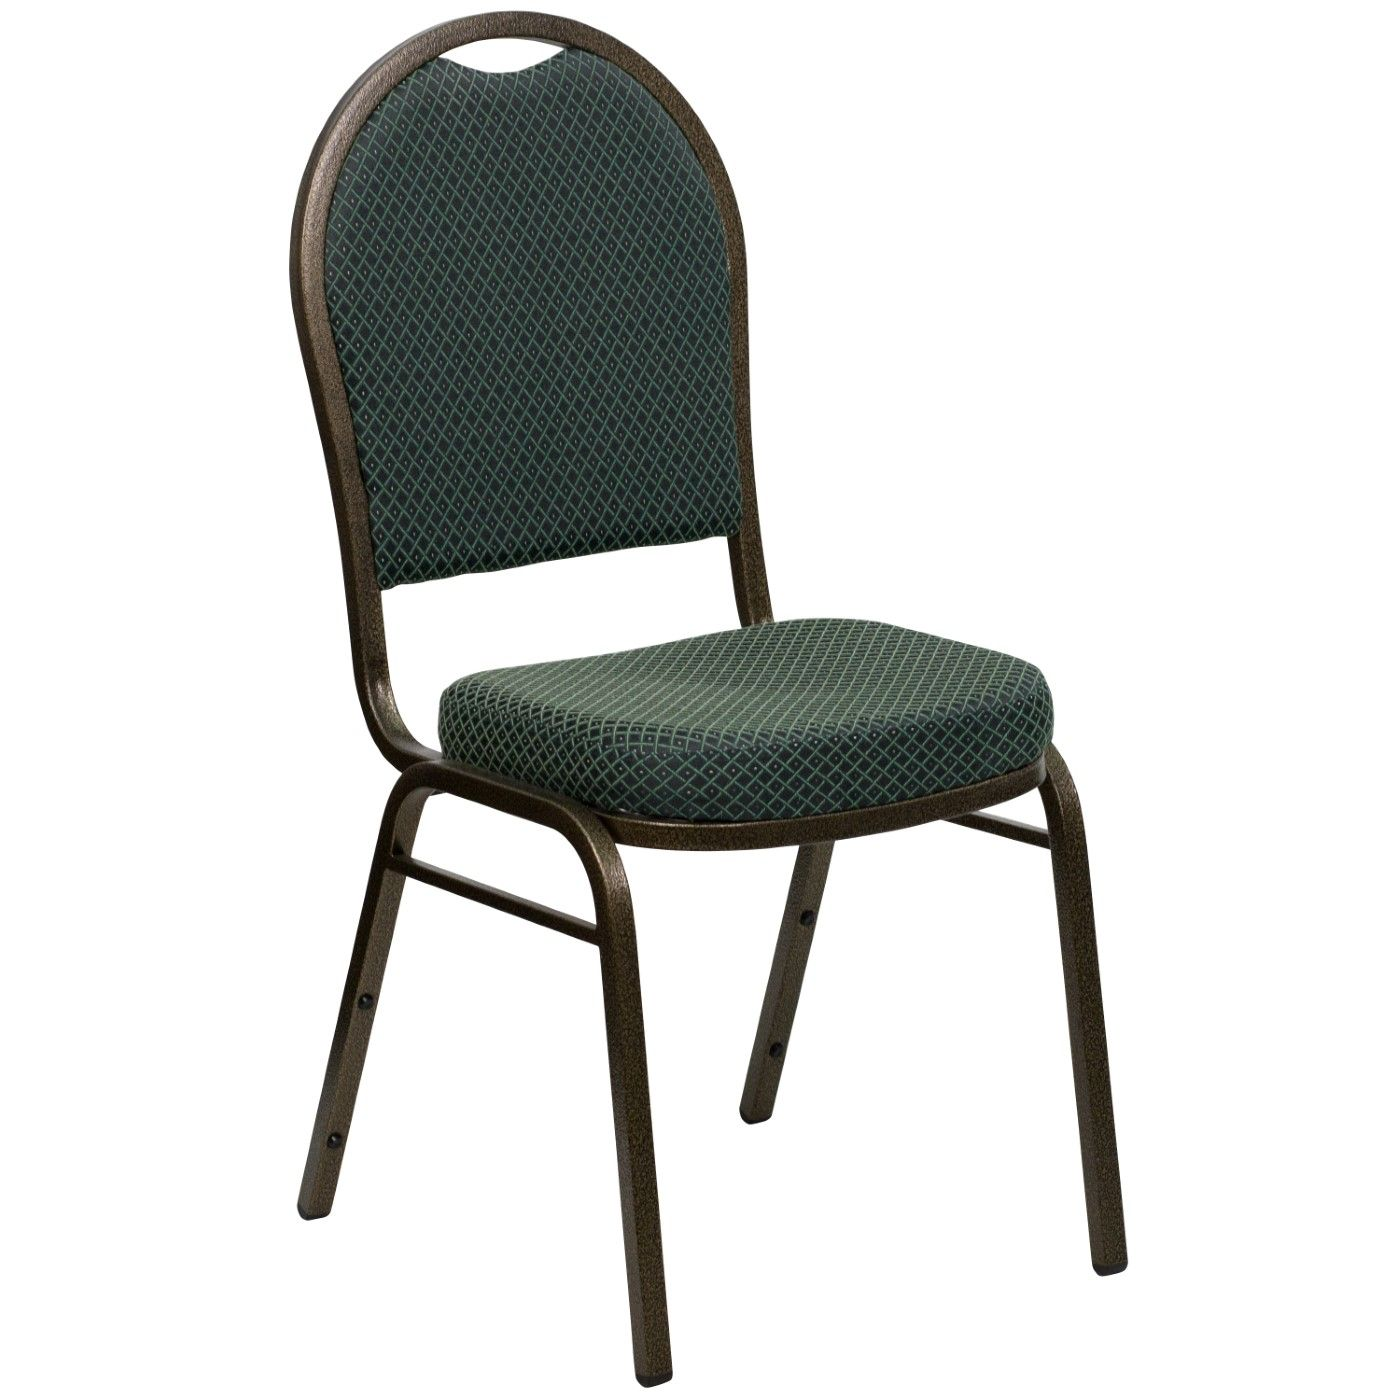 TOUGH ENOUGH Series Dome Back Stacking Banquet Chair in Green Patterned Fabric - Gold Vein Frame